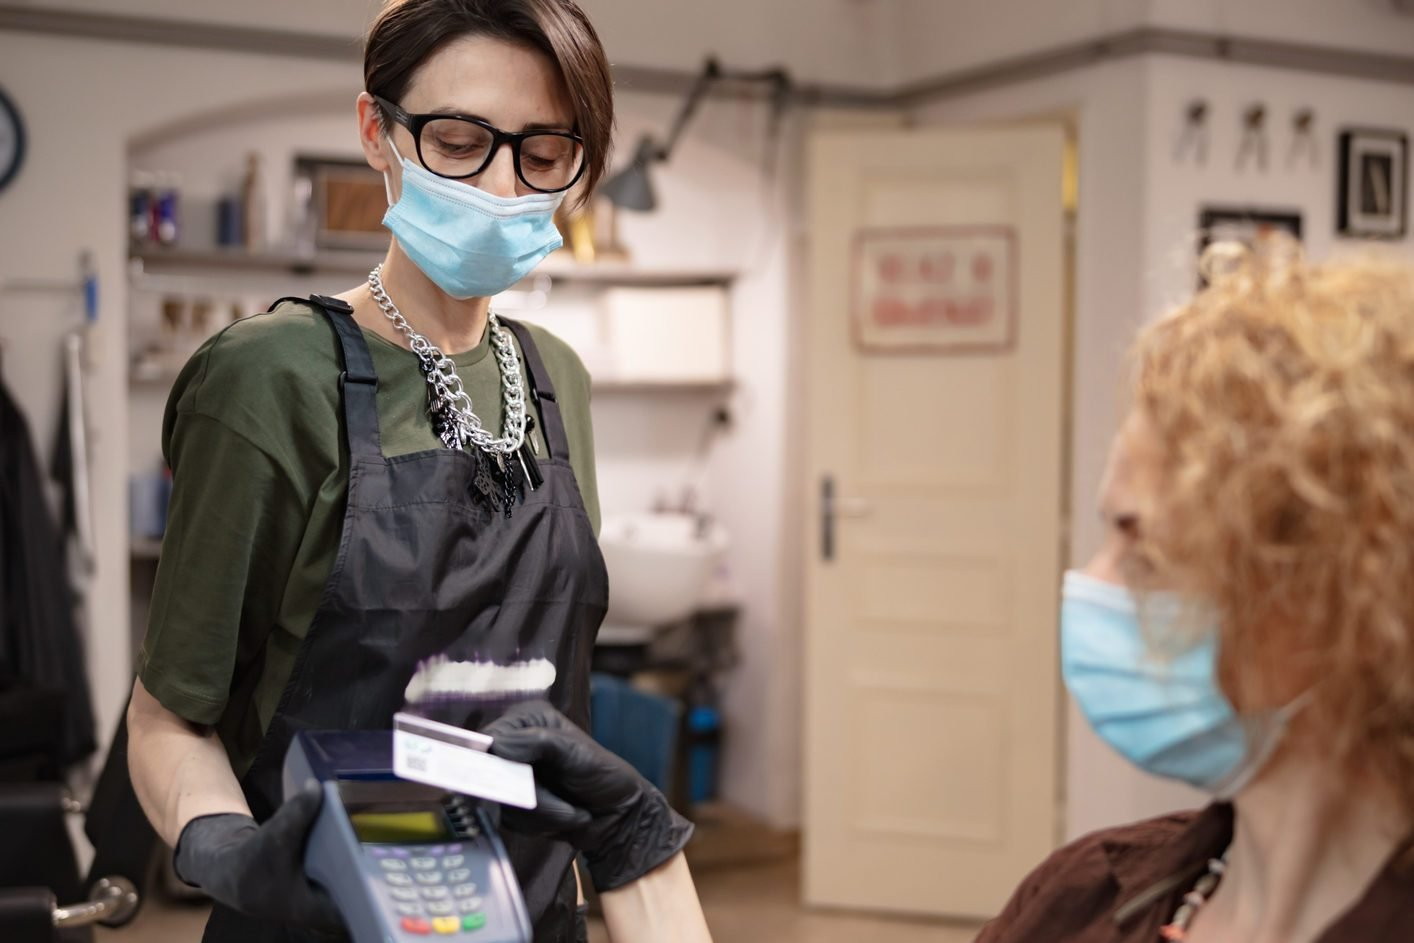 Paying with contactless card. Hairdresser and customer in a salon with medical masks during virus pandemic. Working with safety mask.